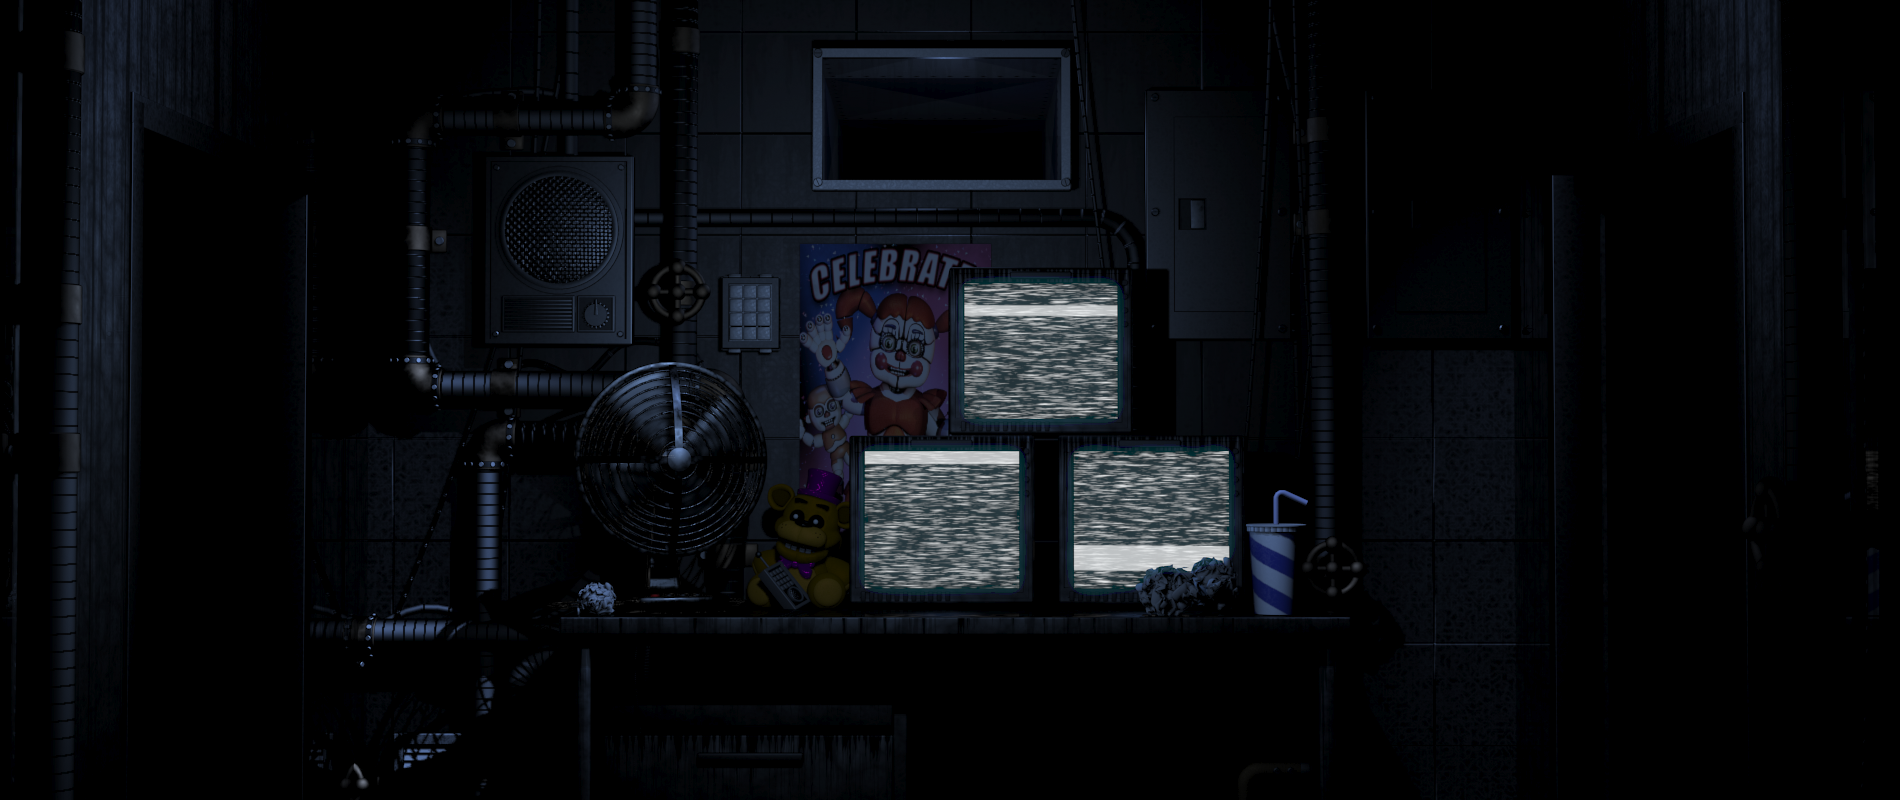 Room Maker Simulator Steam Community Guide How To Beat Ennard Access